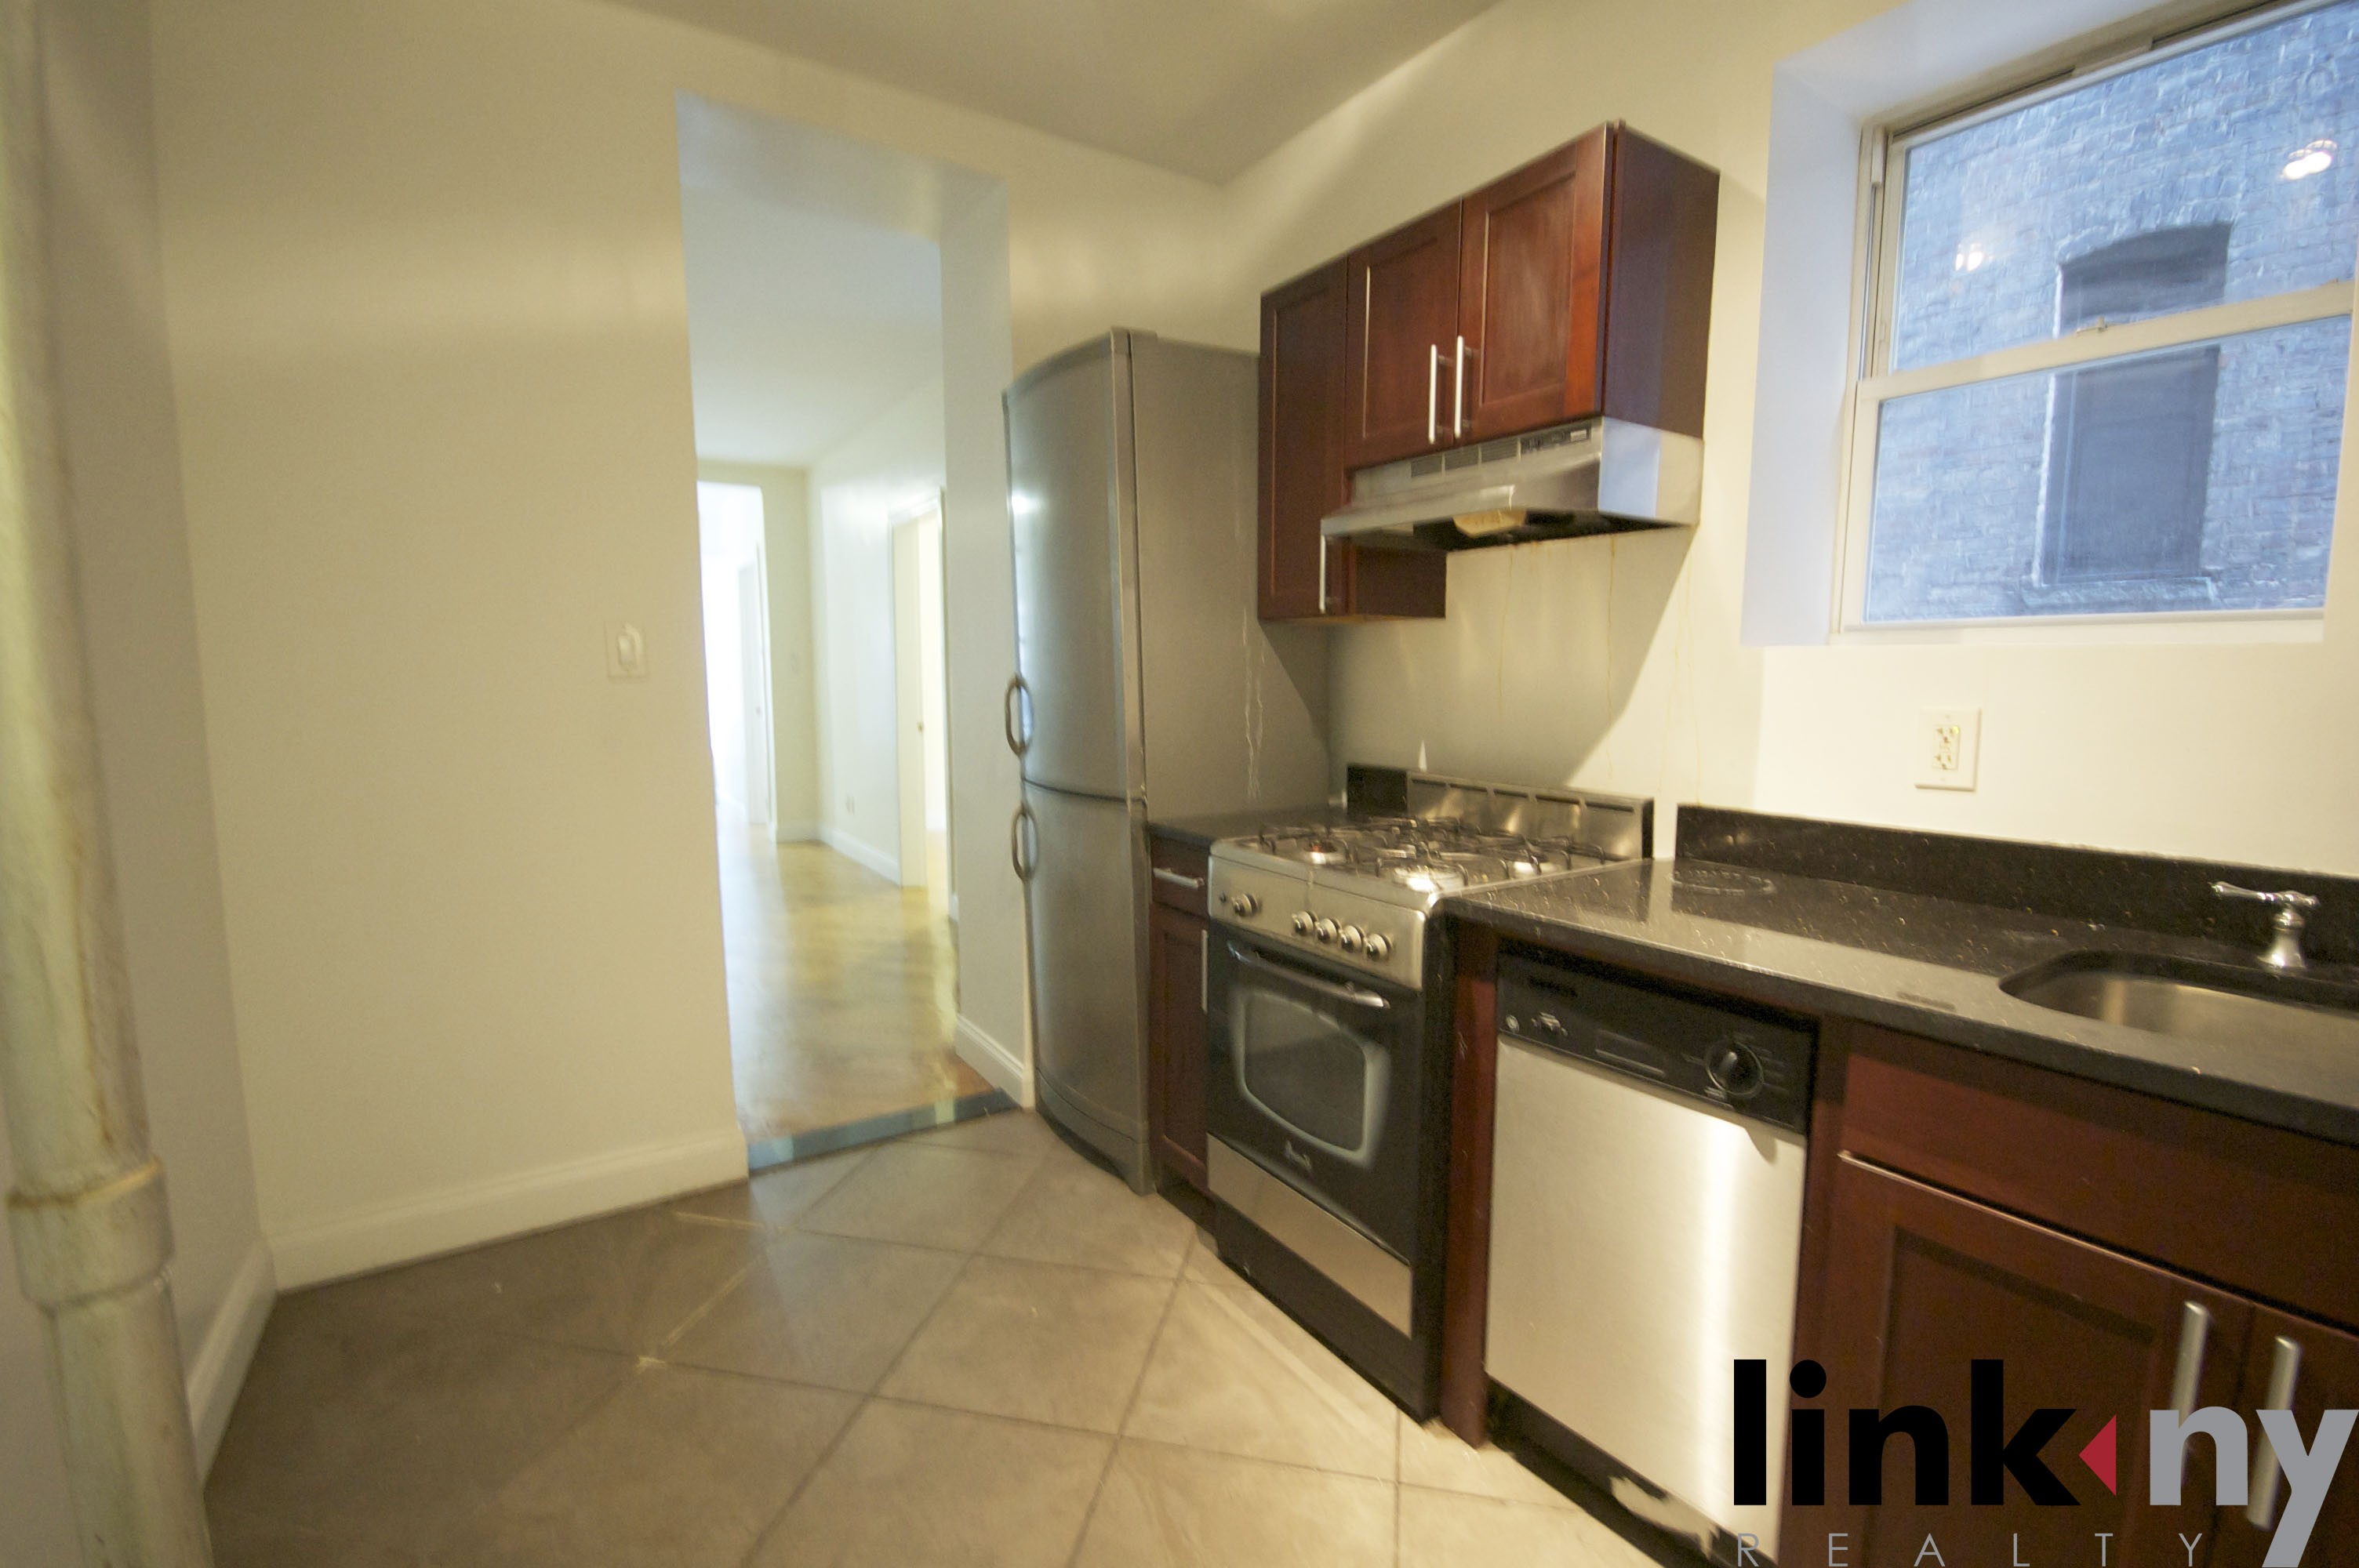 503 West 122nd Street 1 New York Ny 10027 3 Bedroom Apartment For Rent For 3 300 Month Zumper